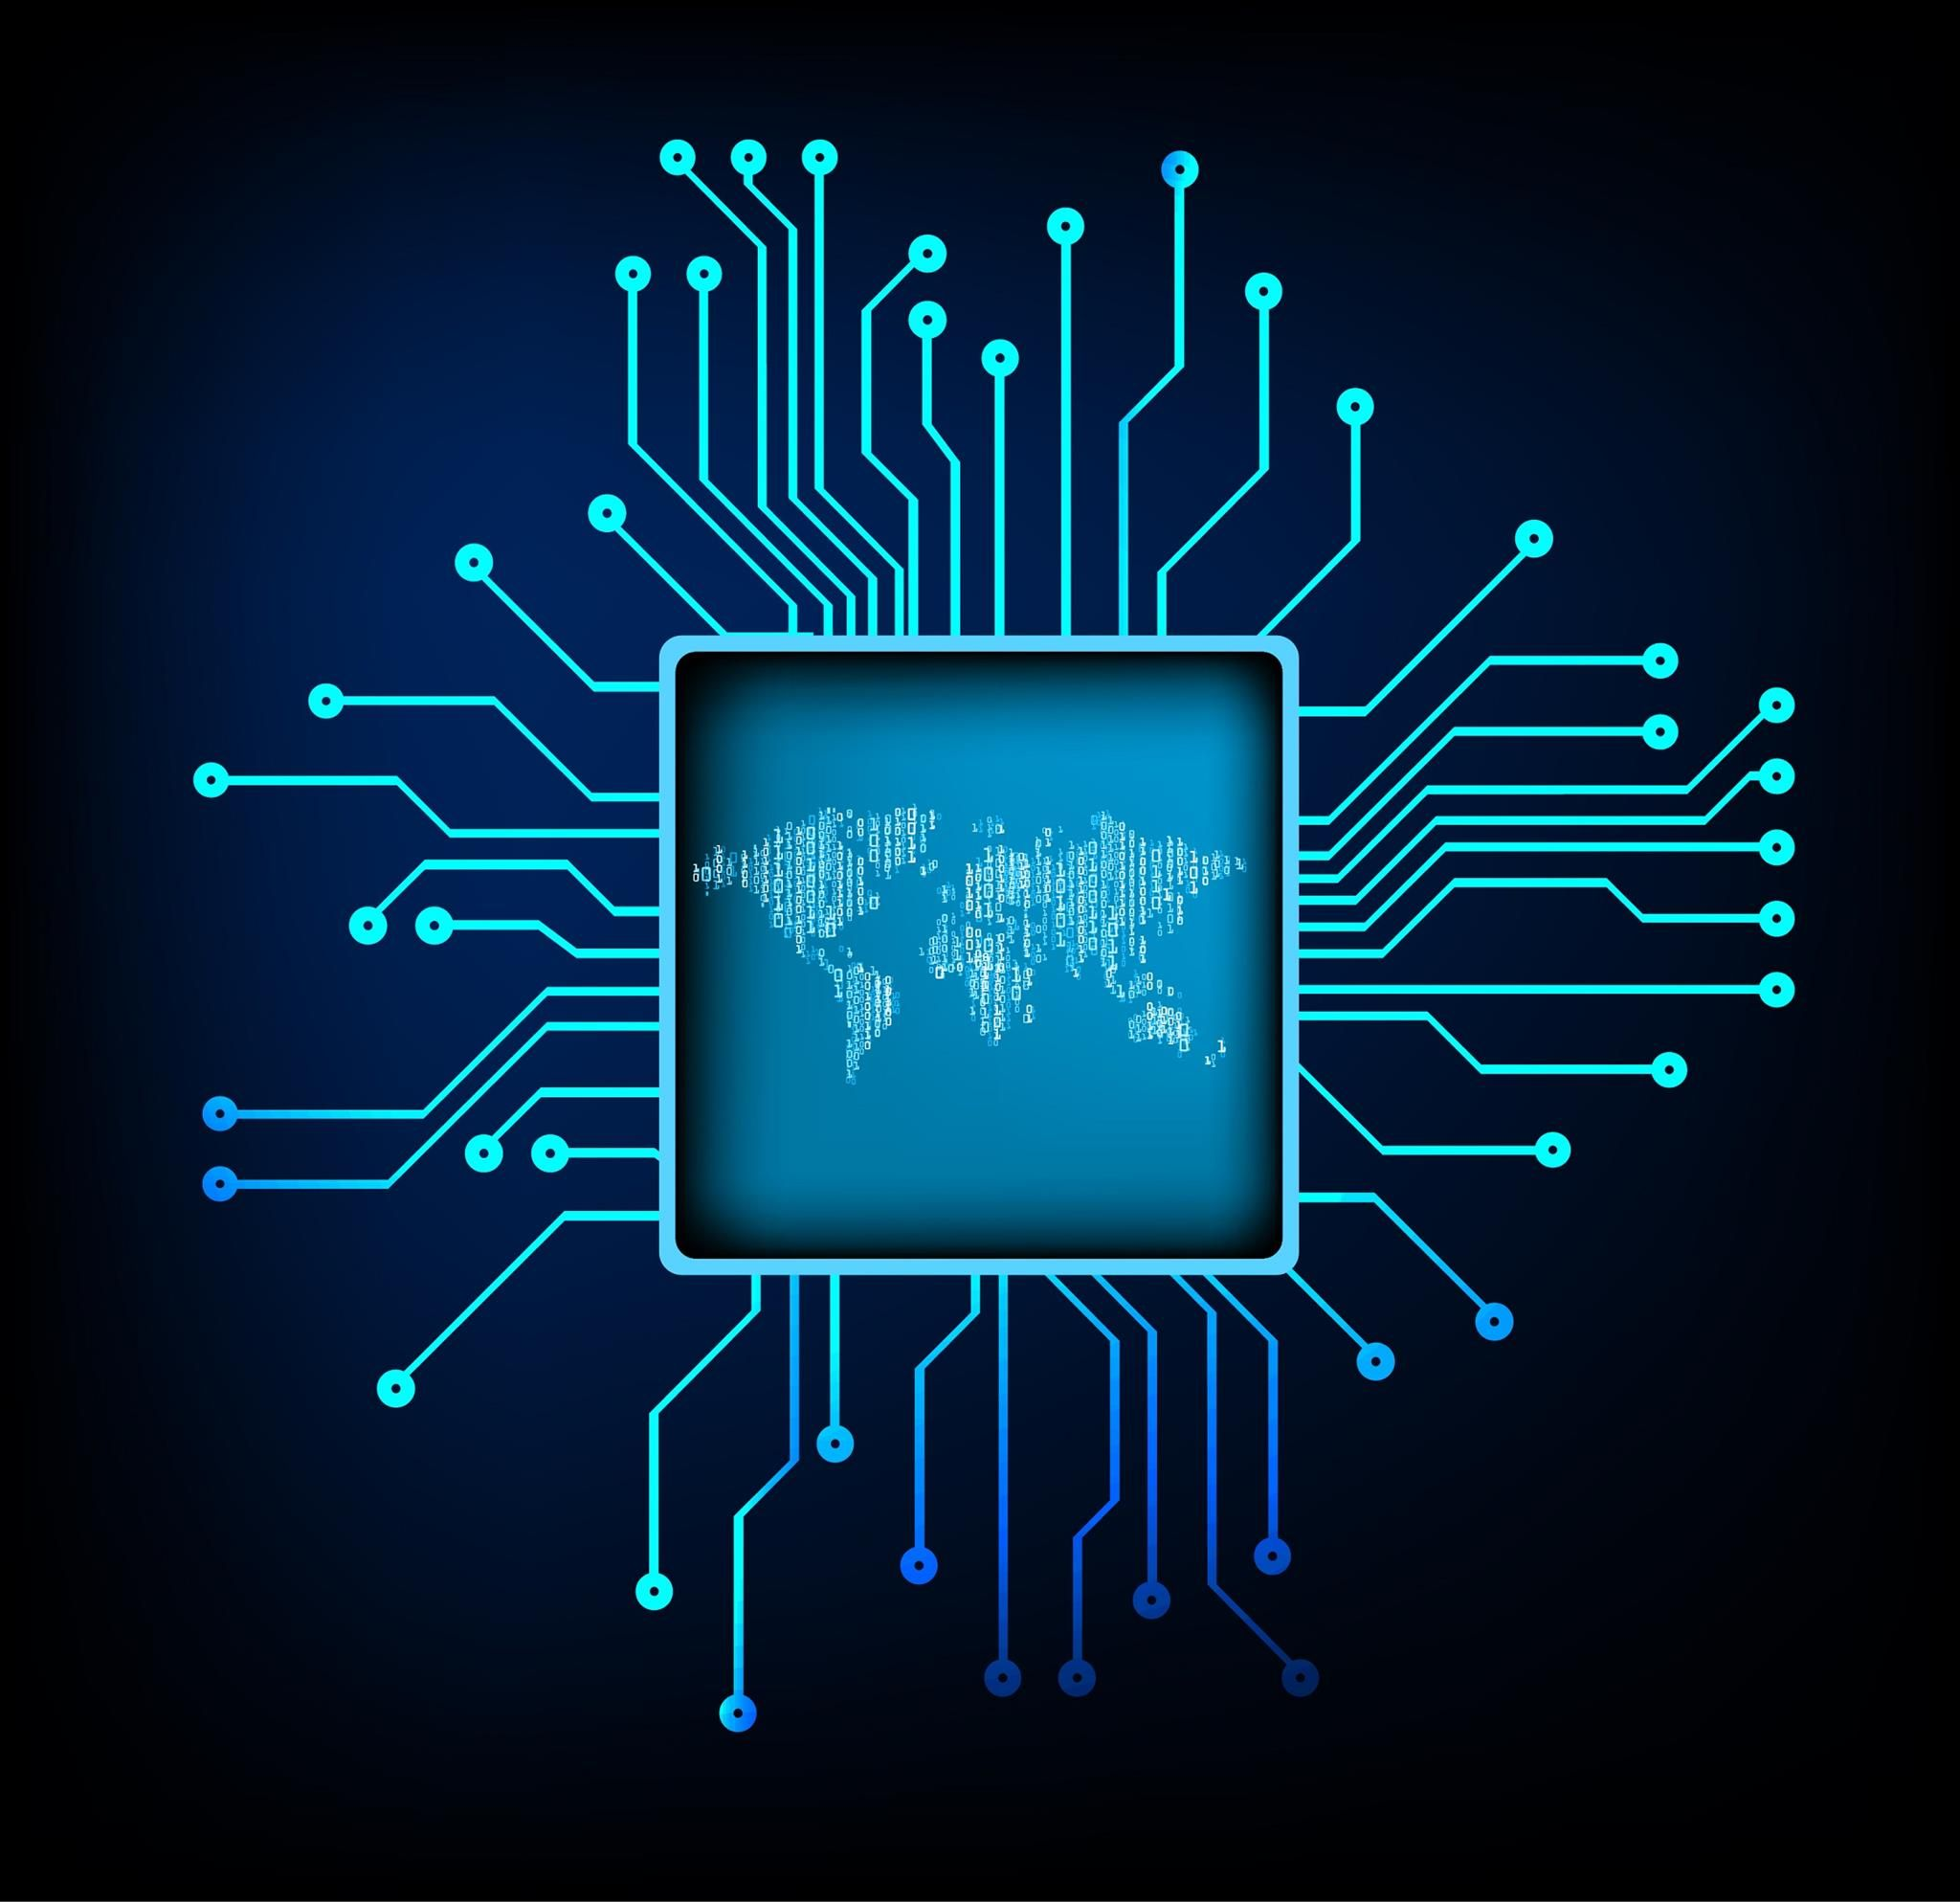 Pcb Fabrication Pcbbasketcom Express Is An Option For Your Printed Circuit Board Photo From Wwwexpresspcbcom Needs Choose The Best Vendor You There Are Also Tools Available Designer To